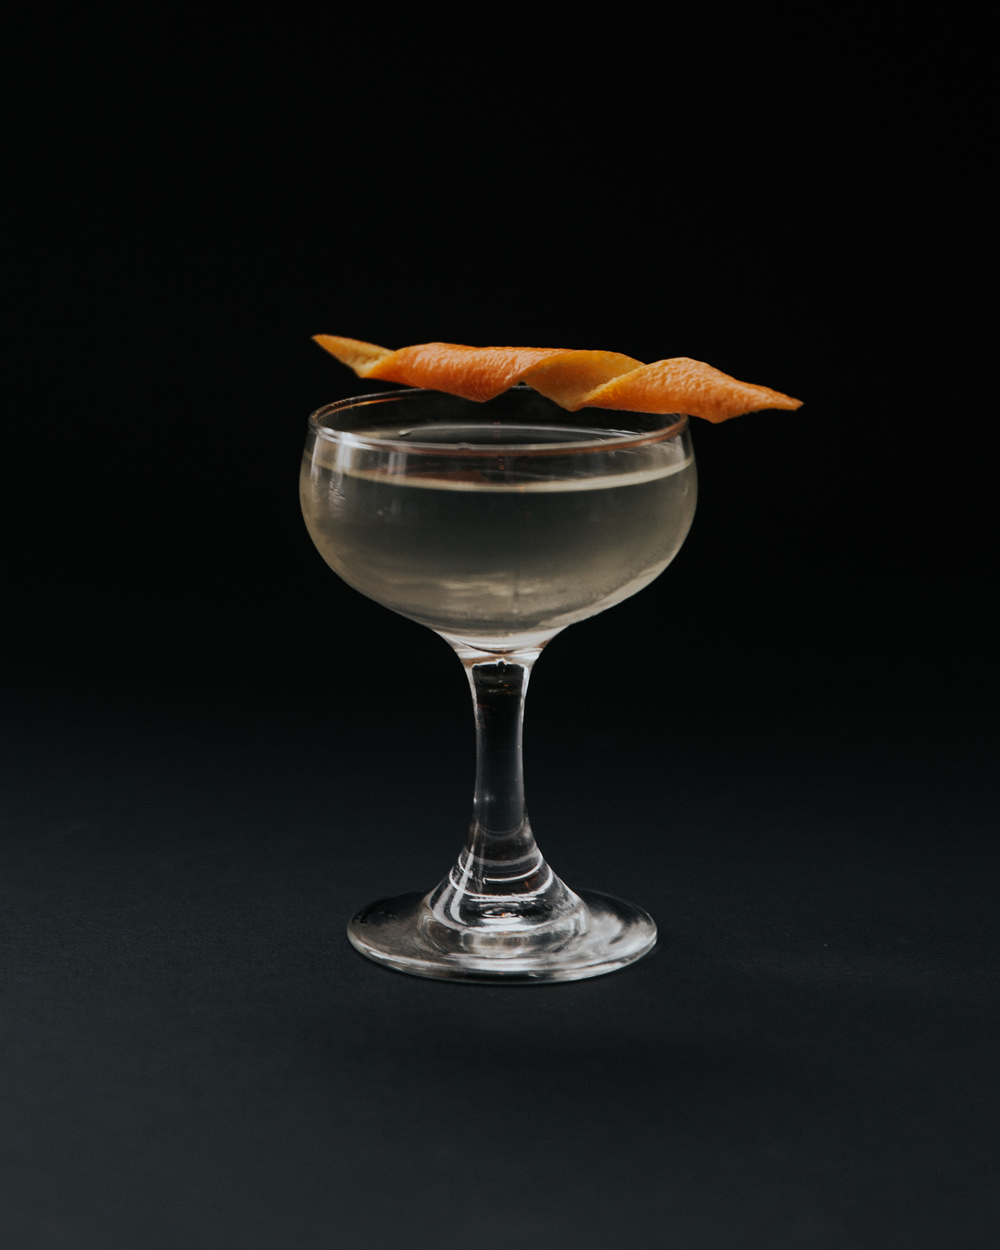 Lemongrass Cardamom - Dry Me a River - 1.5oz Bozal Ensemble Mezcal0.75oz Lillet Blanc0.25oz Dry Curacao3 Dashes Honest John Lemongrass Cardamom BittersCombine all other ingredients in mixing glass. Stir until well chilled. Strain into a coupe glass. Garnish with an orange twist.